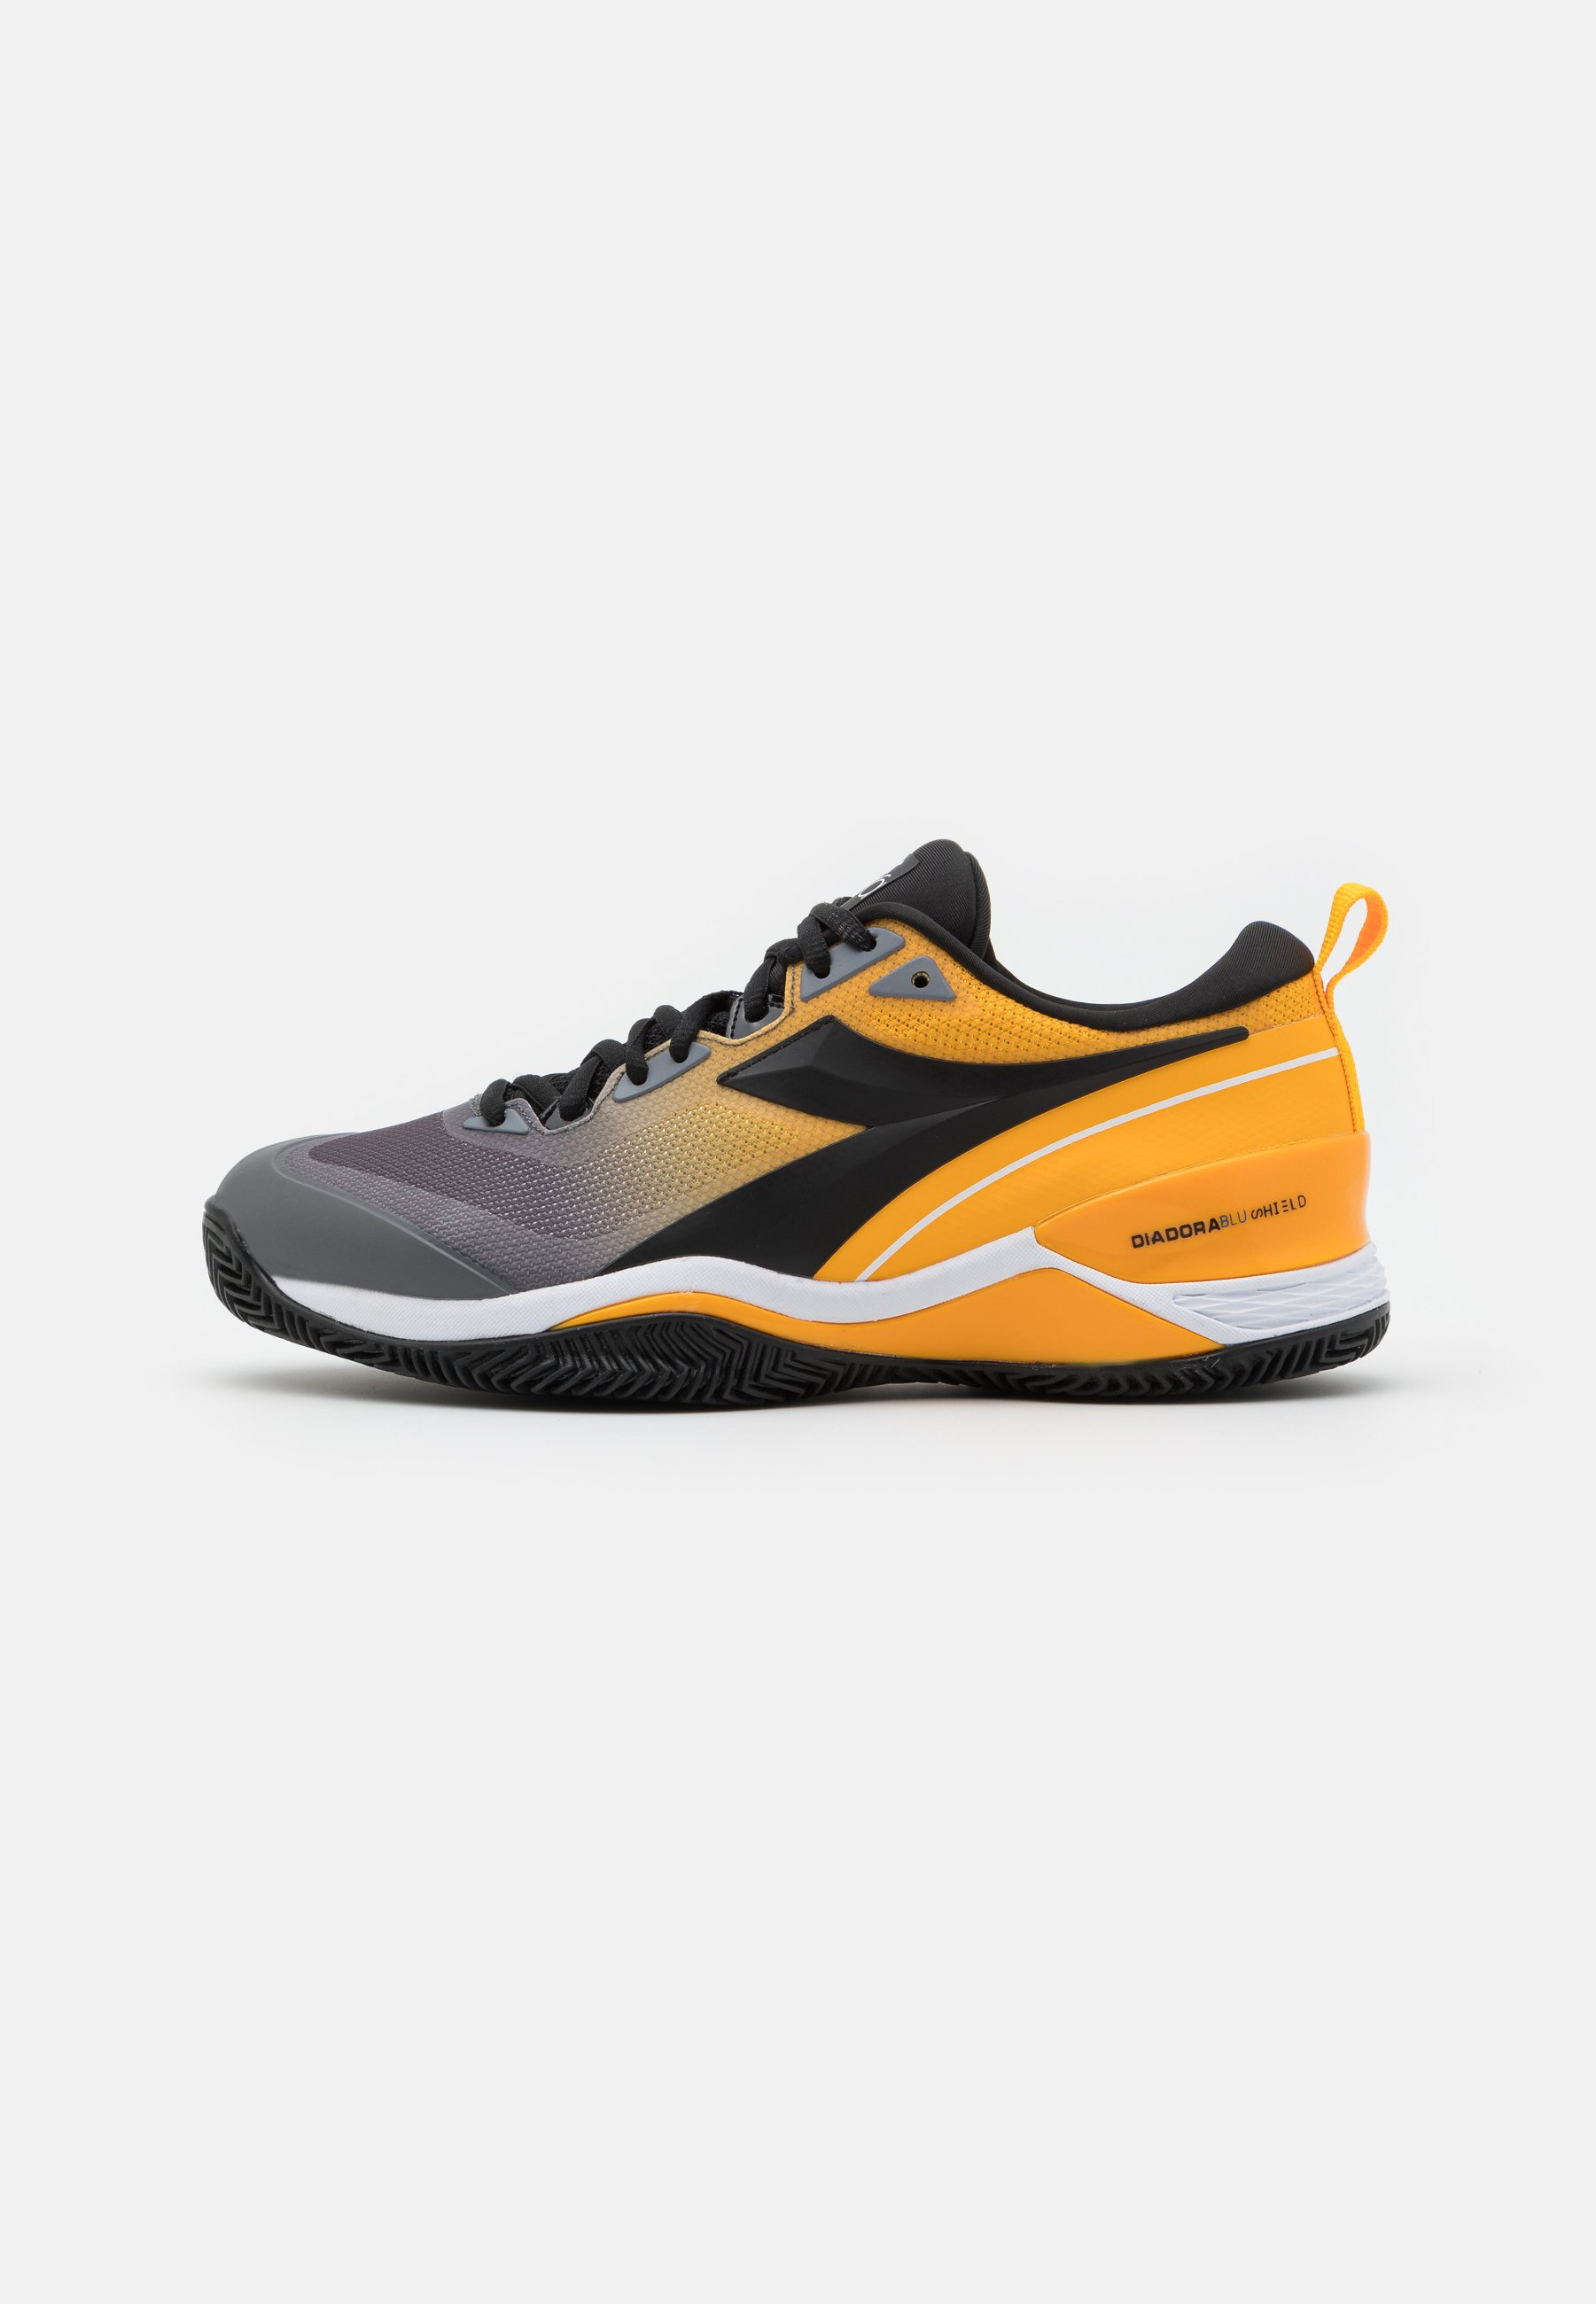 Men SPEED BLUSHIELD 5 CLAY - Clay court tennis shoes